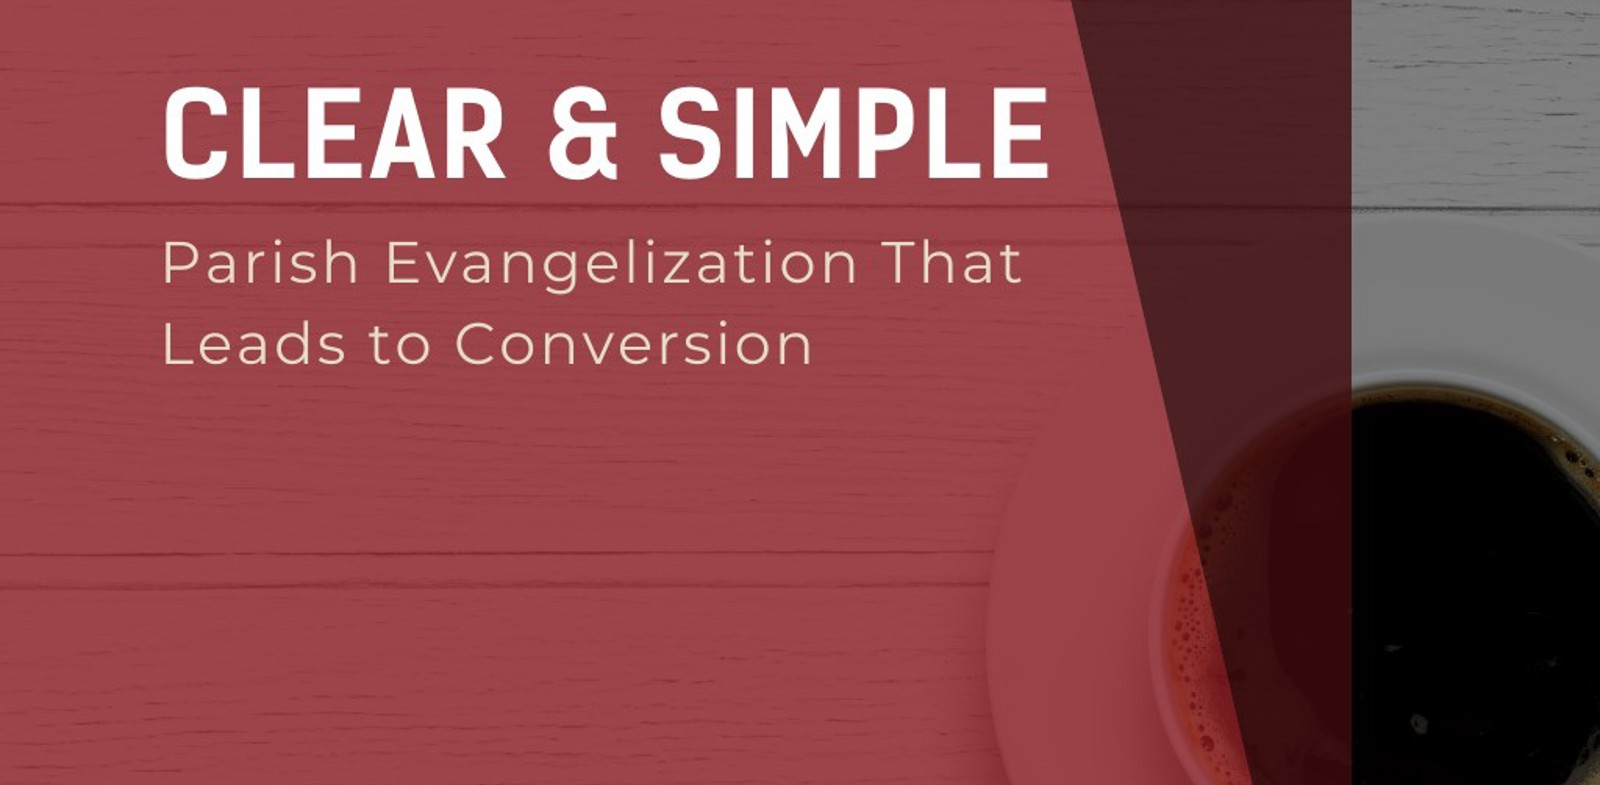 Parish Evanagelisation that leads to Conversion